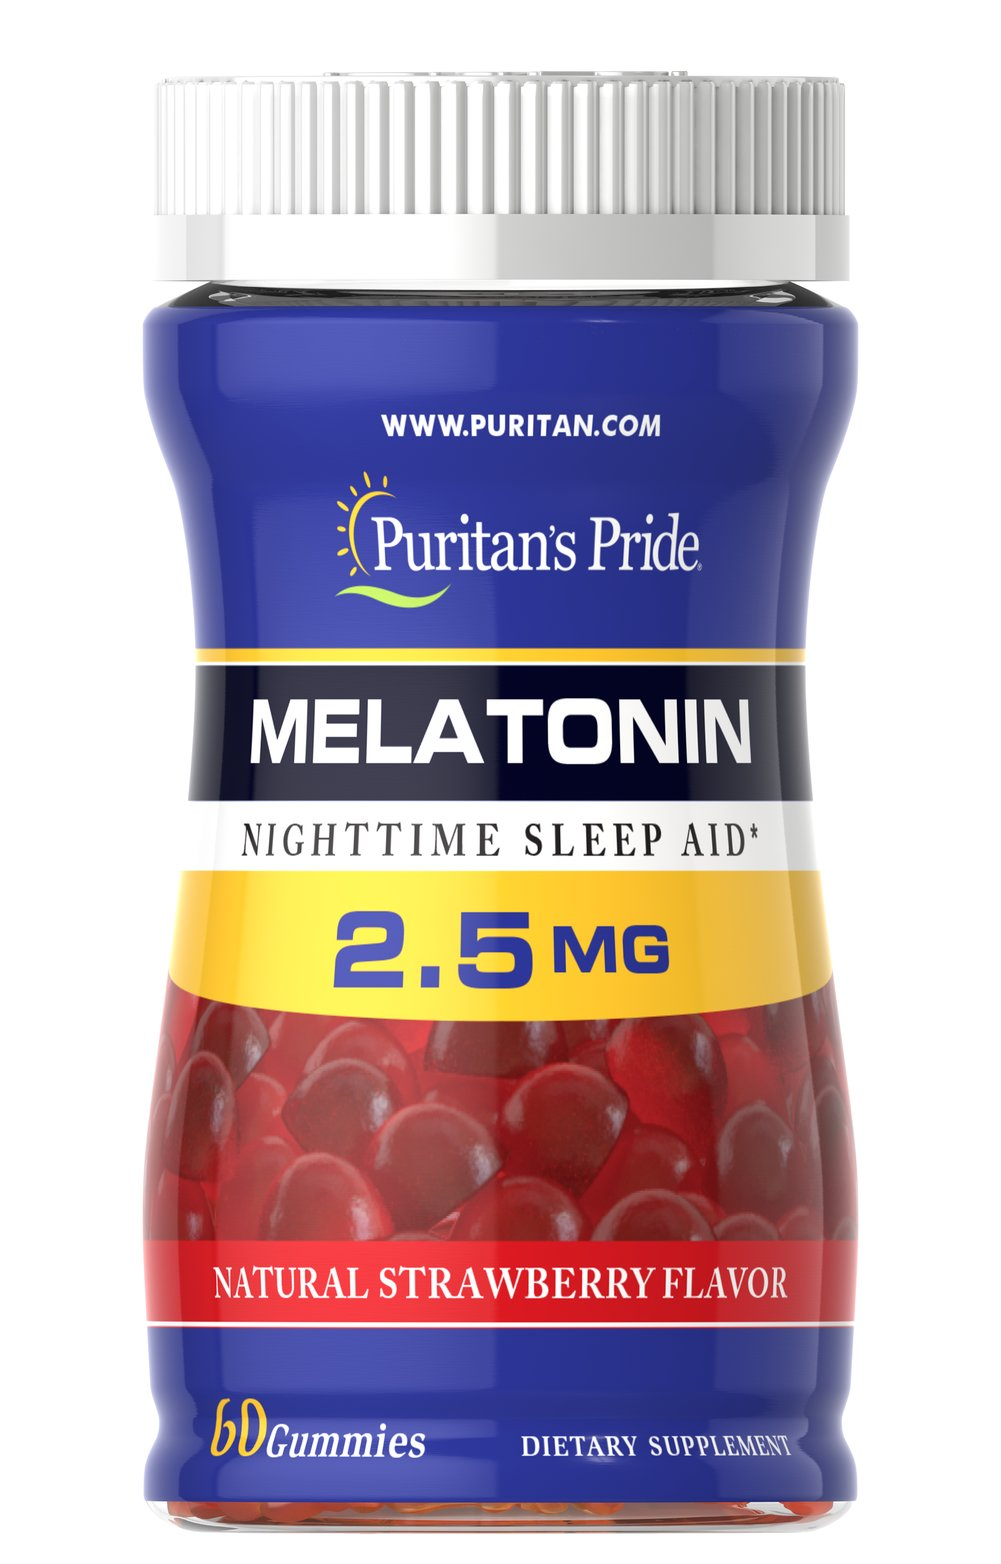 Melatonin Gummy 2.5 mg Strawberry Flavor <ul><li>Nutritionally supports sound sleep** </li><li>Fall asleep faster, stay asleep longer**</li><li>Helps improve quality of rest**  </li></ul><p>Melatonin is a naturally occurring hormone that is produced in the body and it is closely involved in the natural sleep cycle.** If you experience occasional sleeplessness, or if you want to improve your quality of rest, melatonin may be a good choice.** I